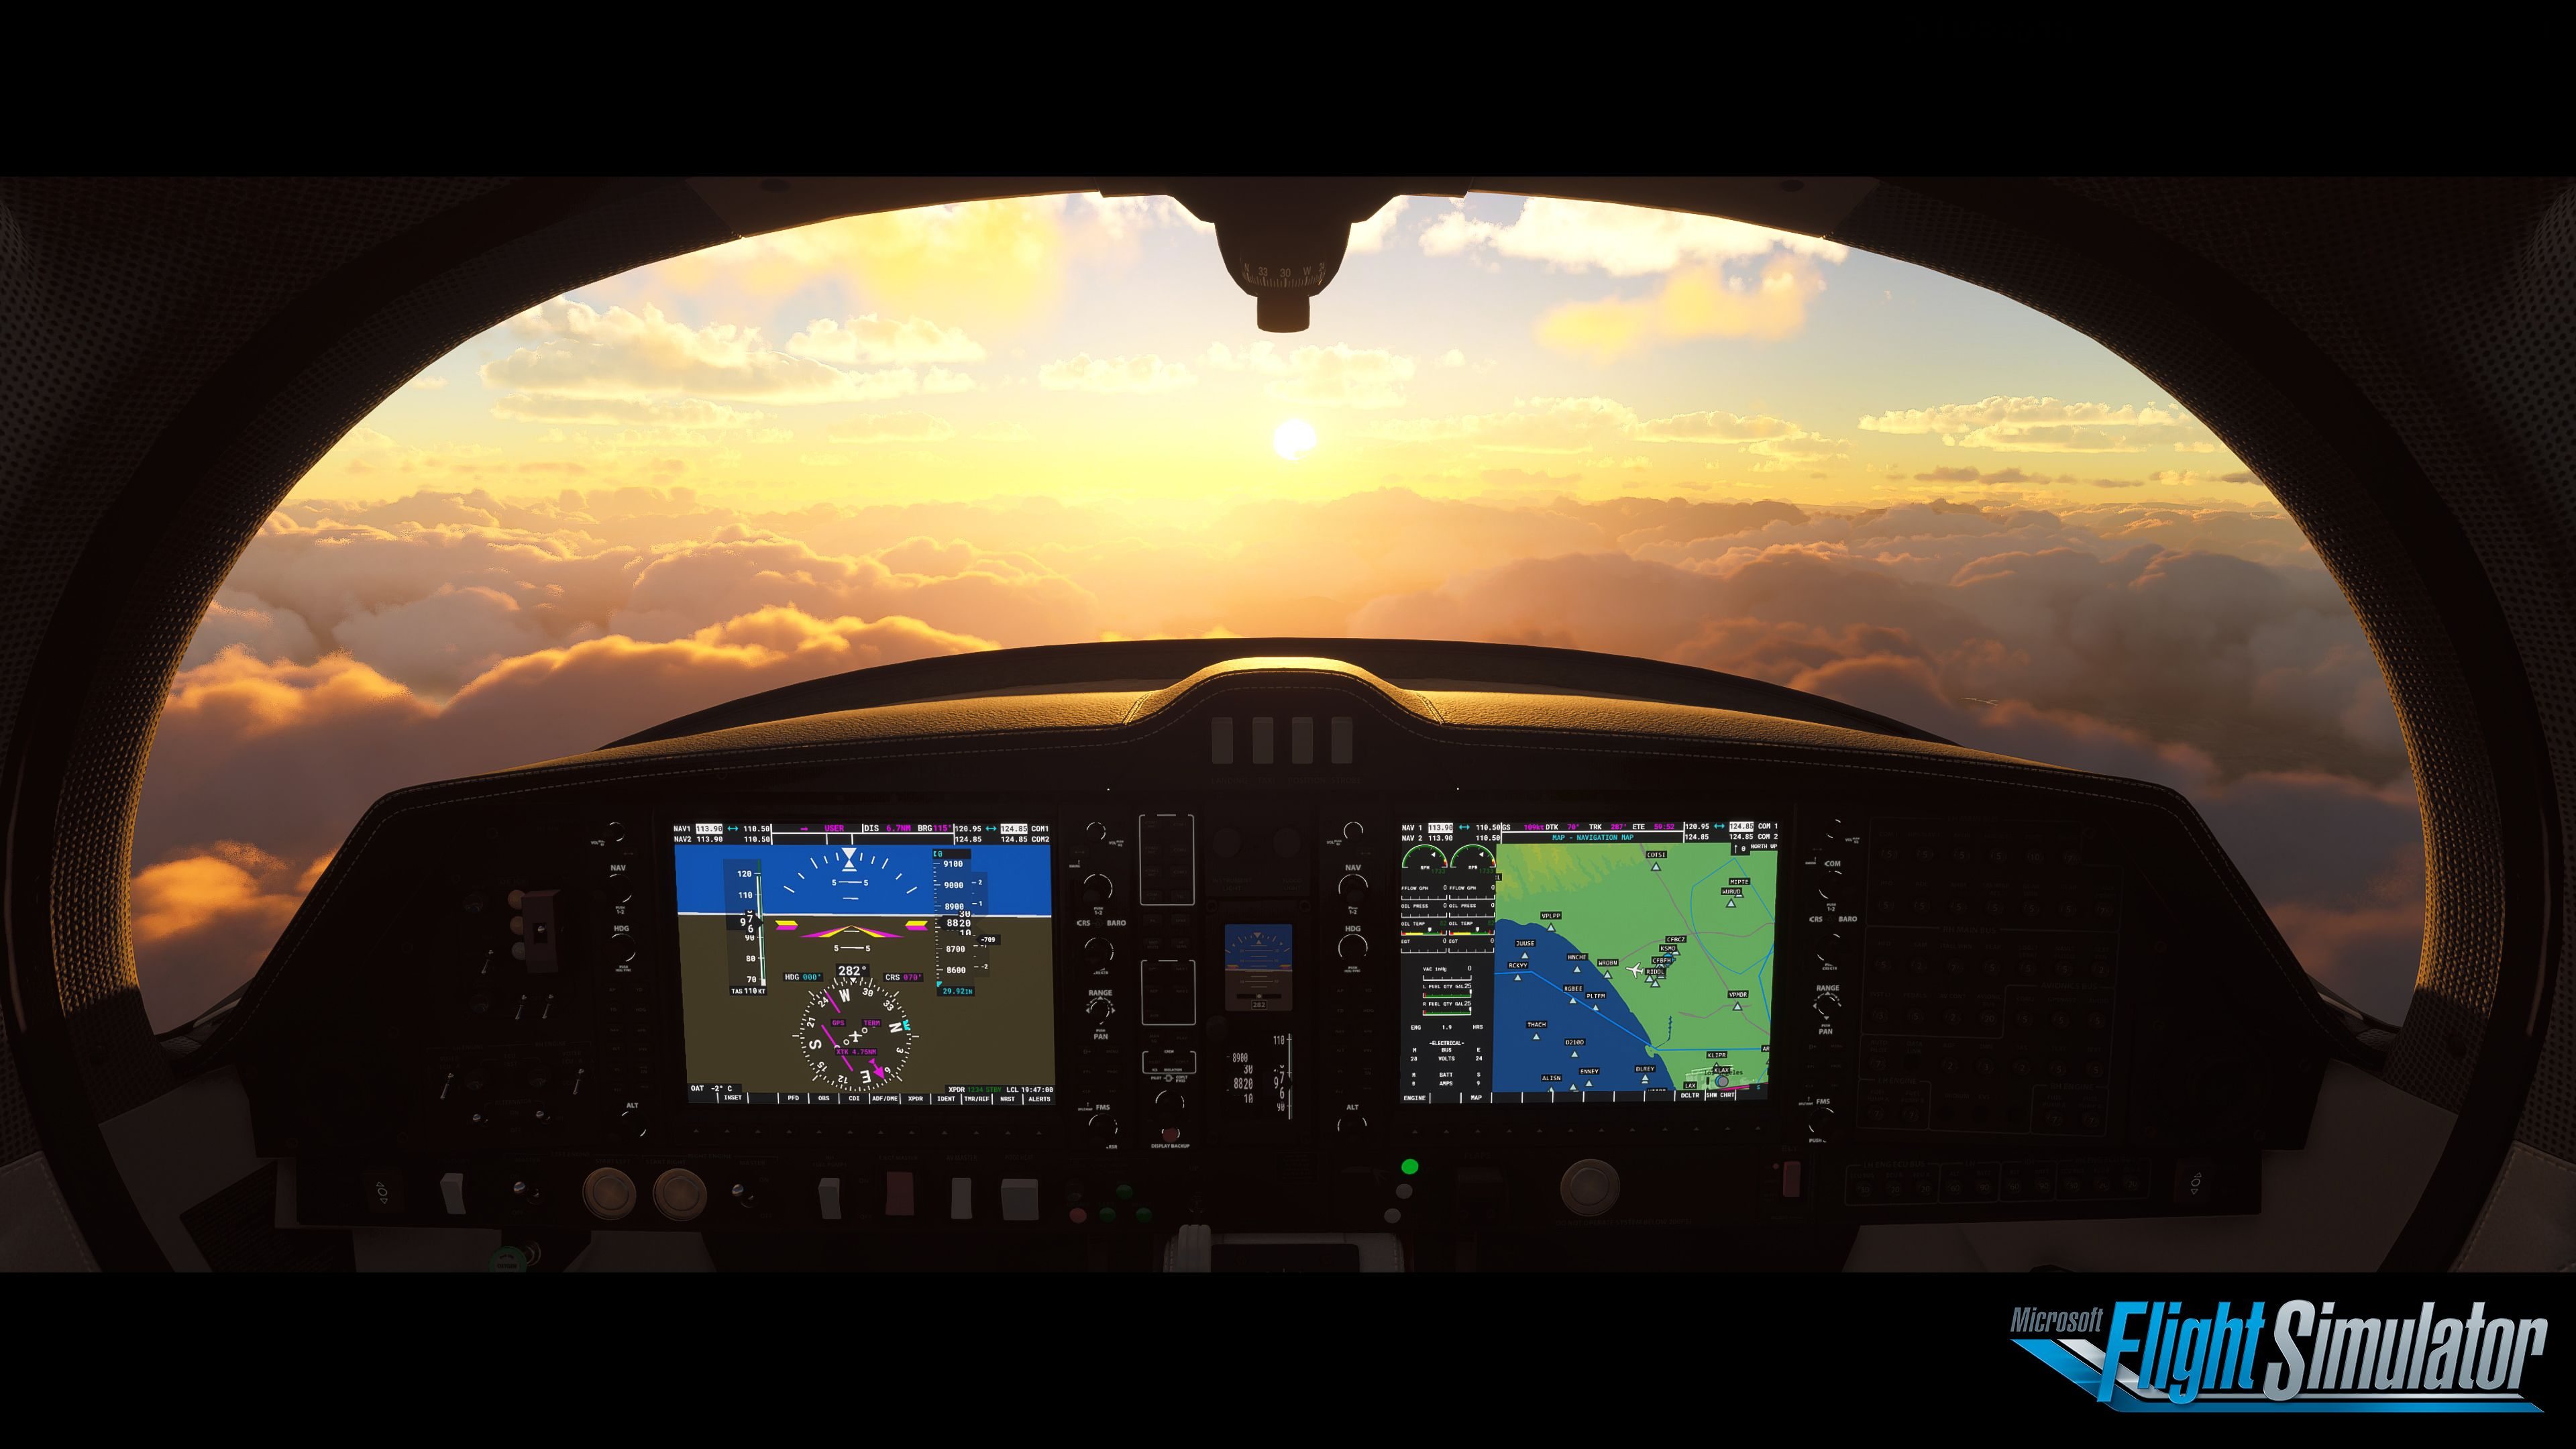 Microsoft's next Flight Simulator release will be available for PC and Xbox